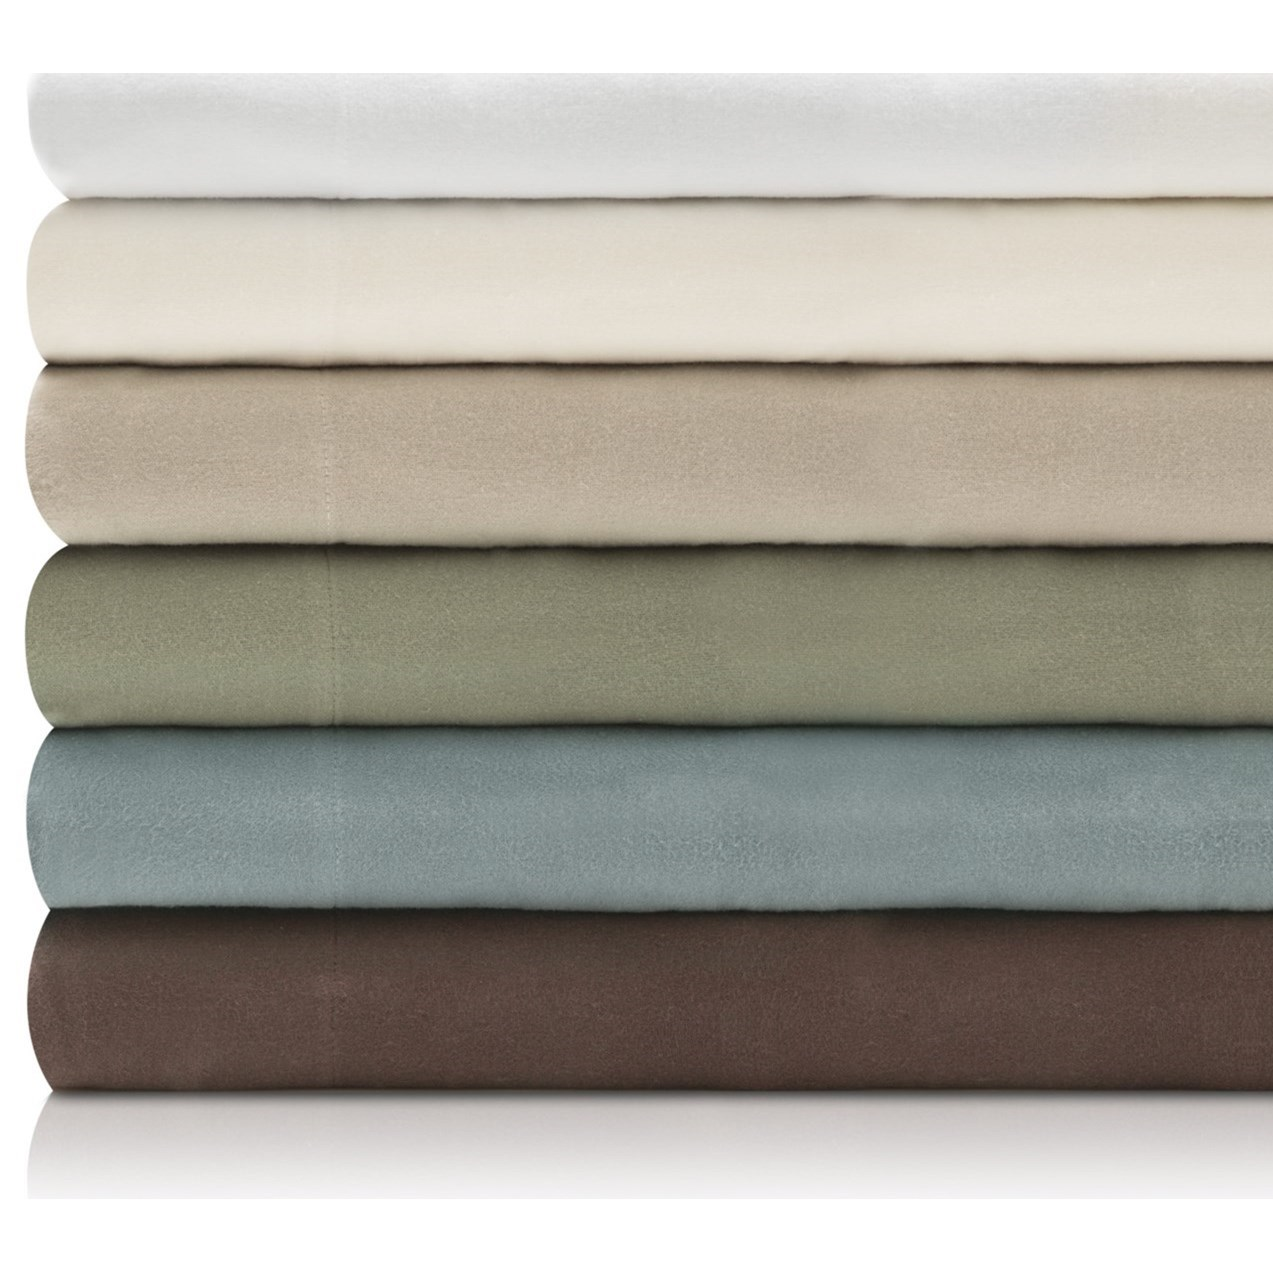 Malouf Portuguese Flannel Queen Woven™ Portuguese Flannel Sheet Set - Item Number: WO19QQIVFS